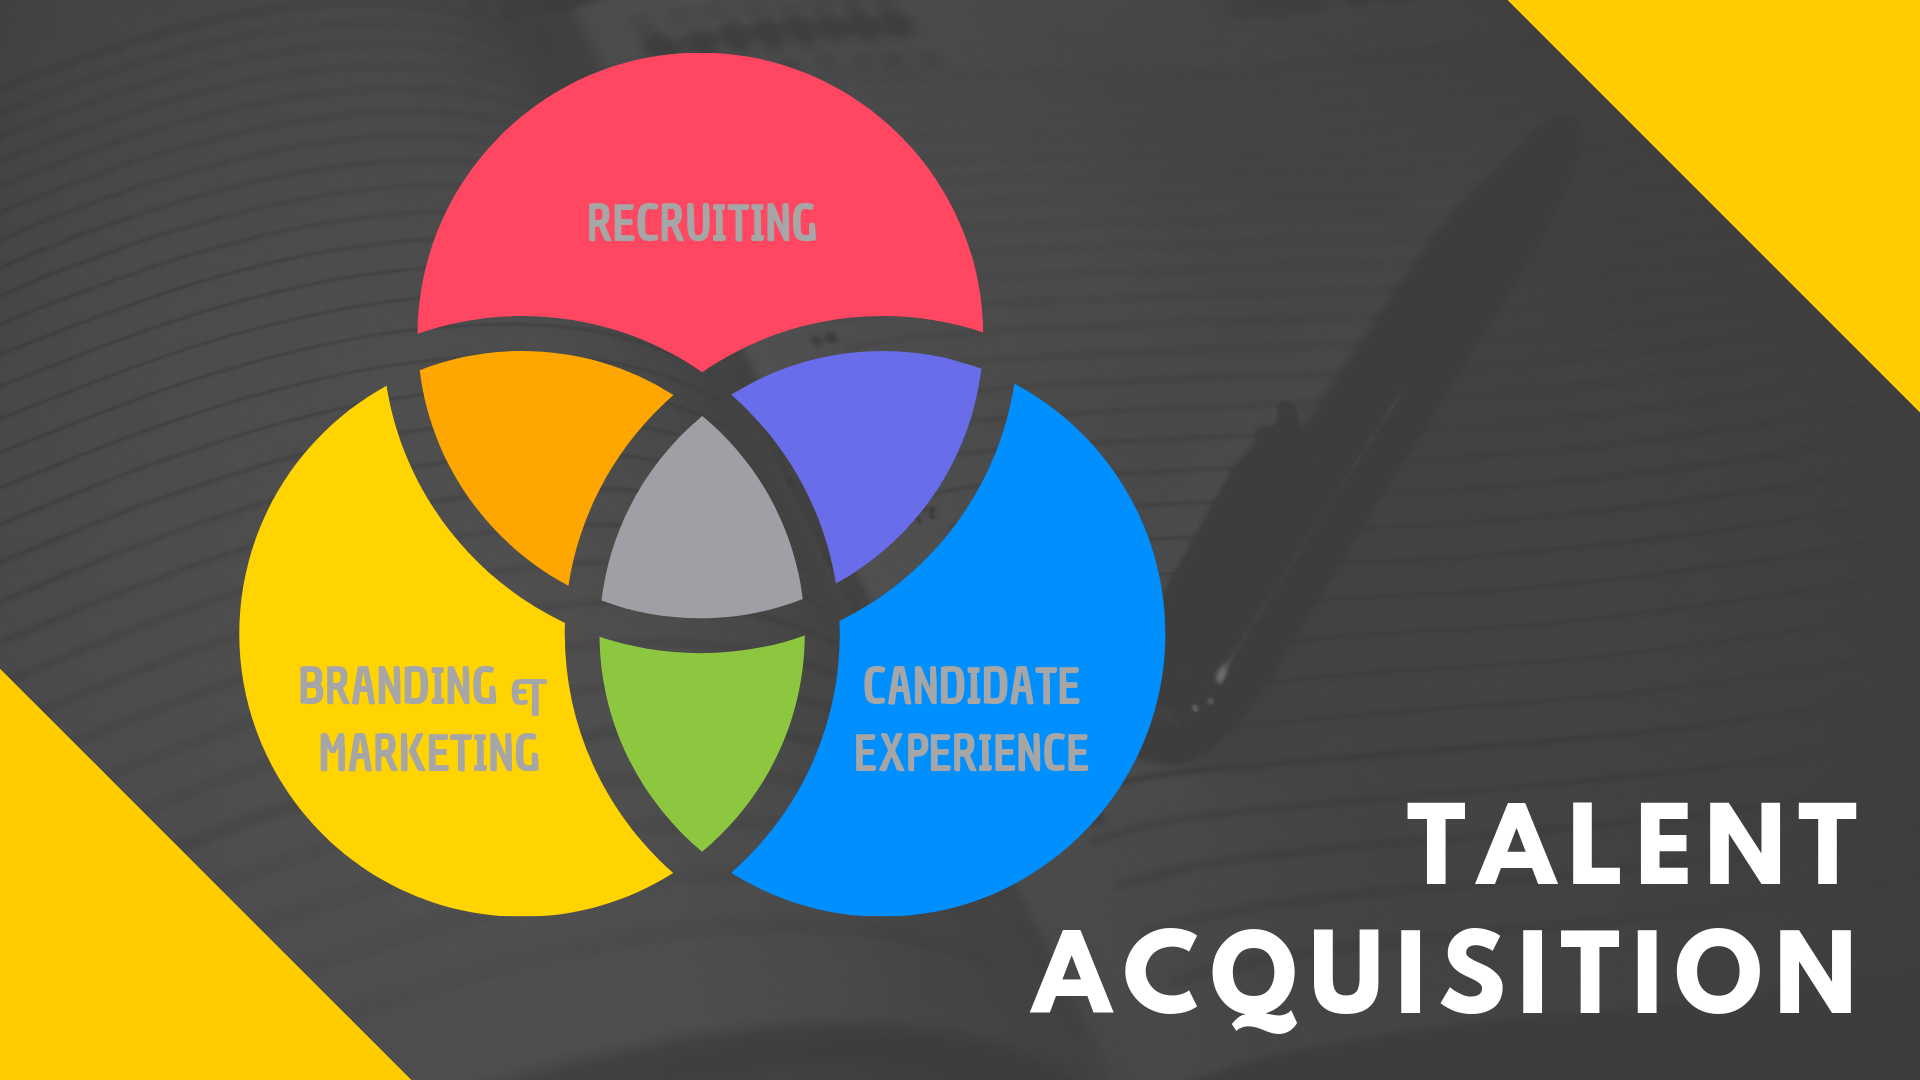 Talent Acquisition Components Leadingedge Personnel